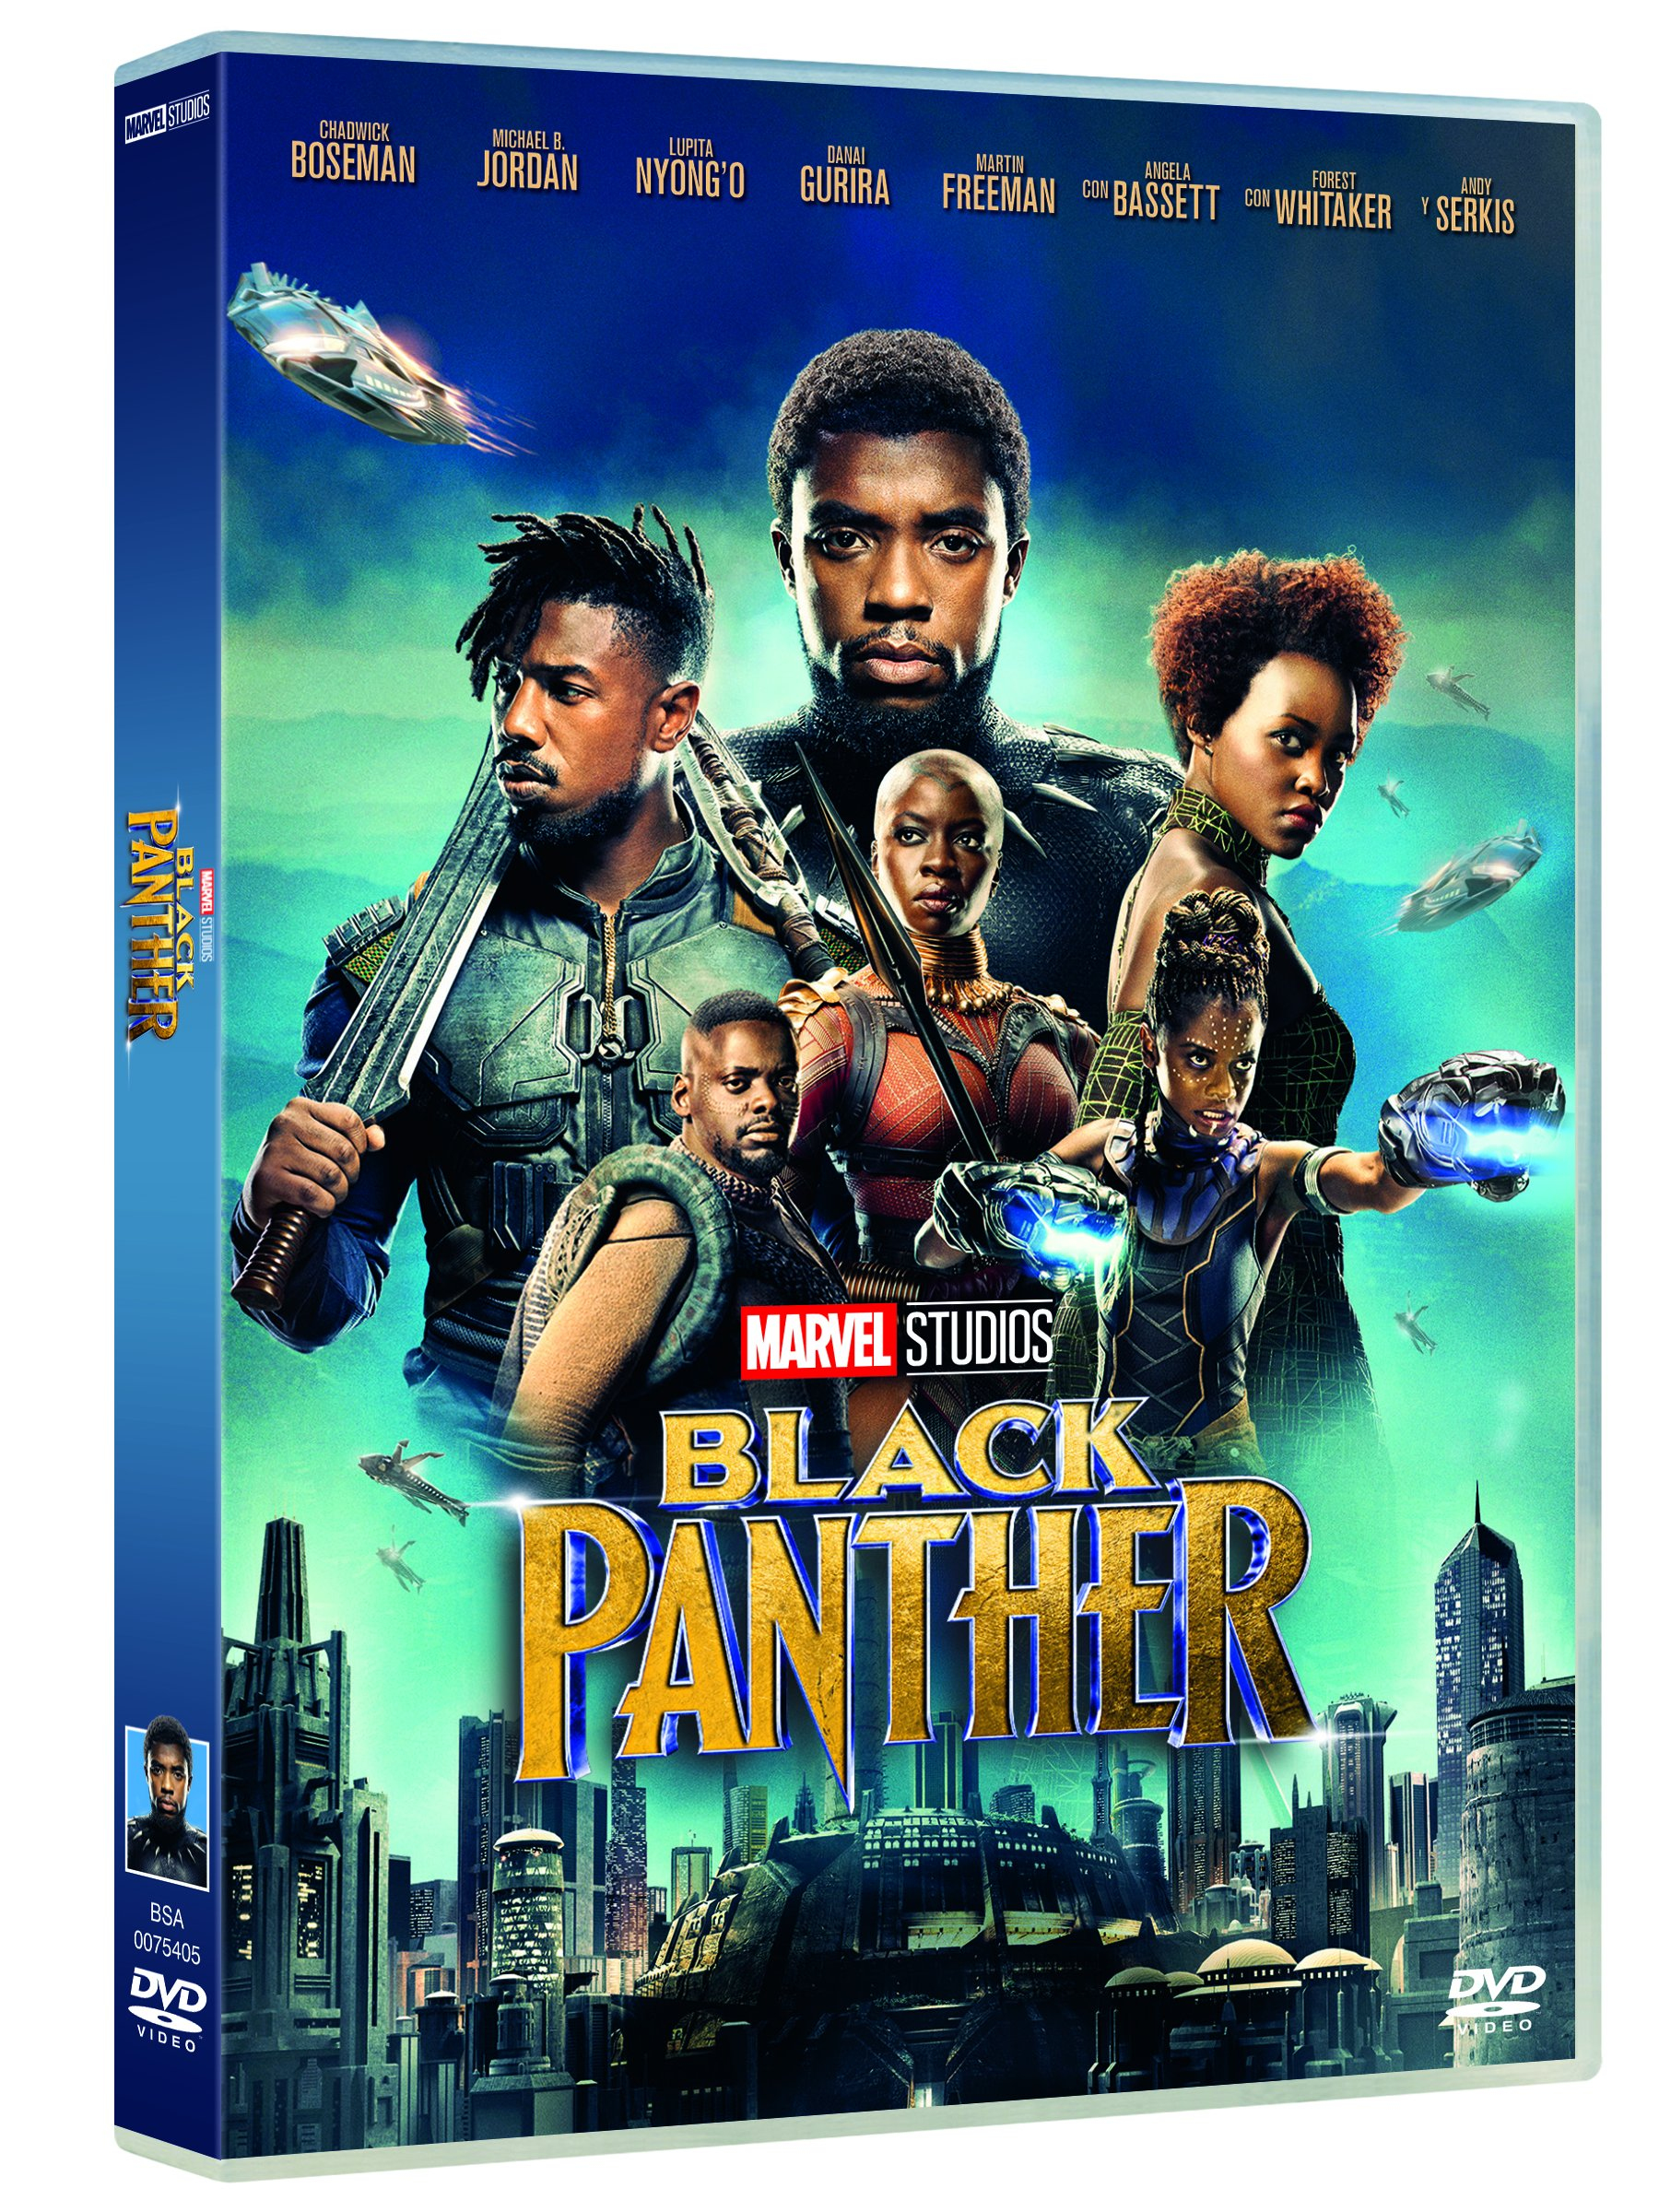 910fP0lrTSL - Black Panther [DVD]